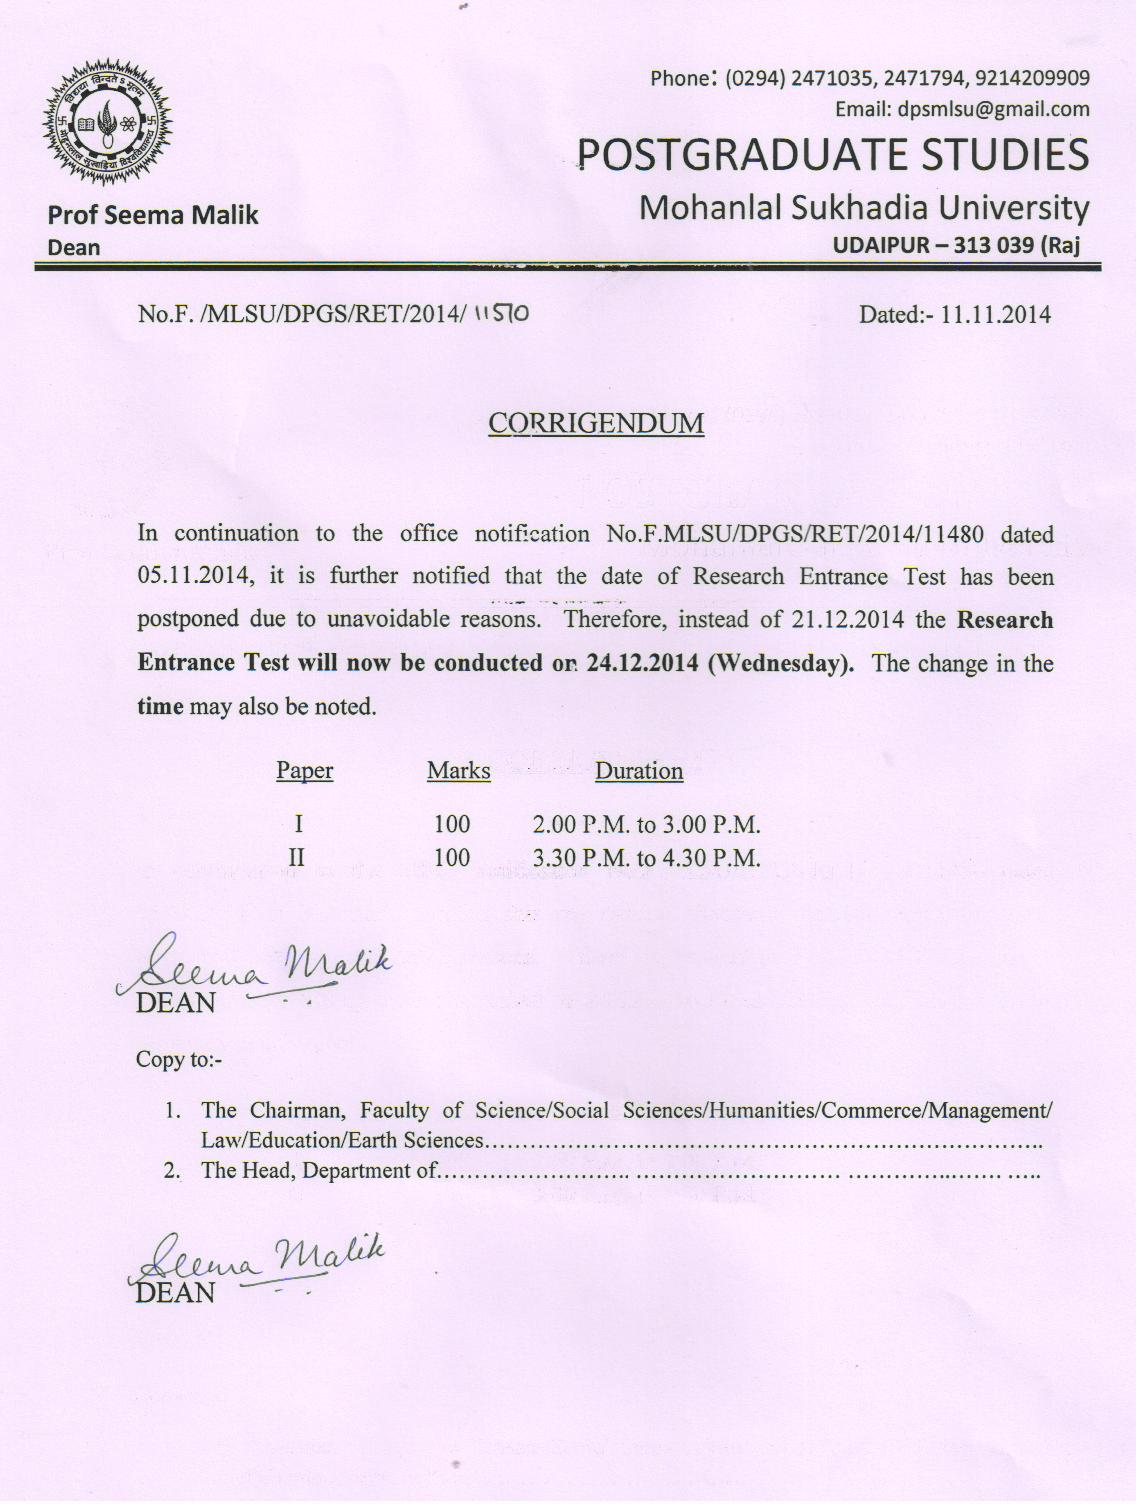 mlsu phd course work result 2013